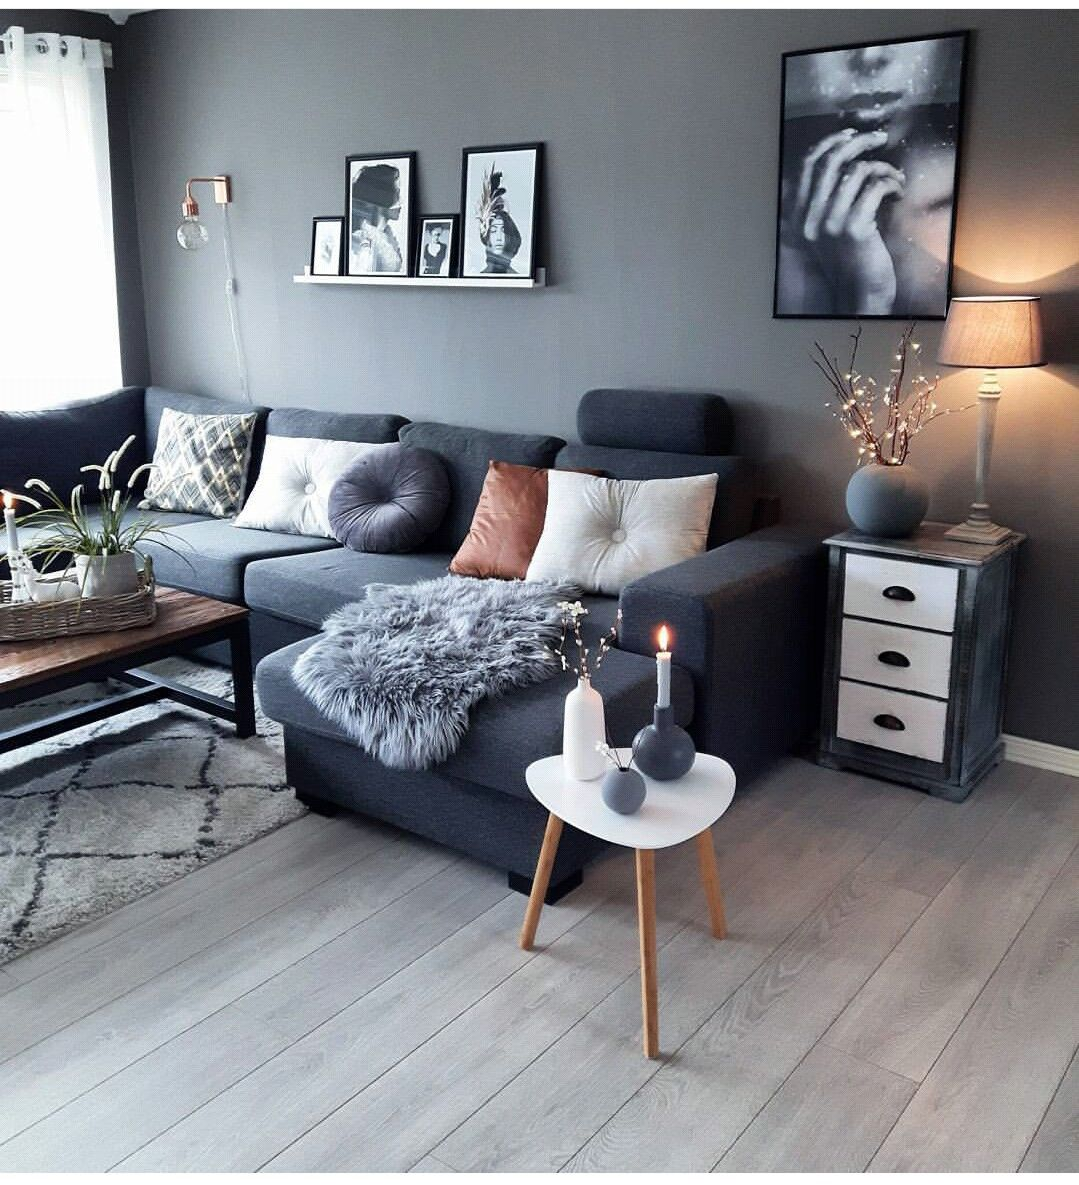 sofa wohnzimmer wohnideen pinterest wohnzimmer haus wohnzimmer und wohnzimmer ideen. Black Bedroom Furniture Sets. Home Design Ideas